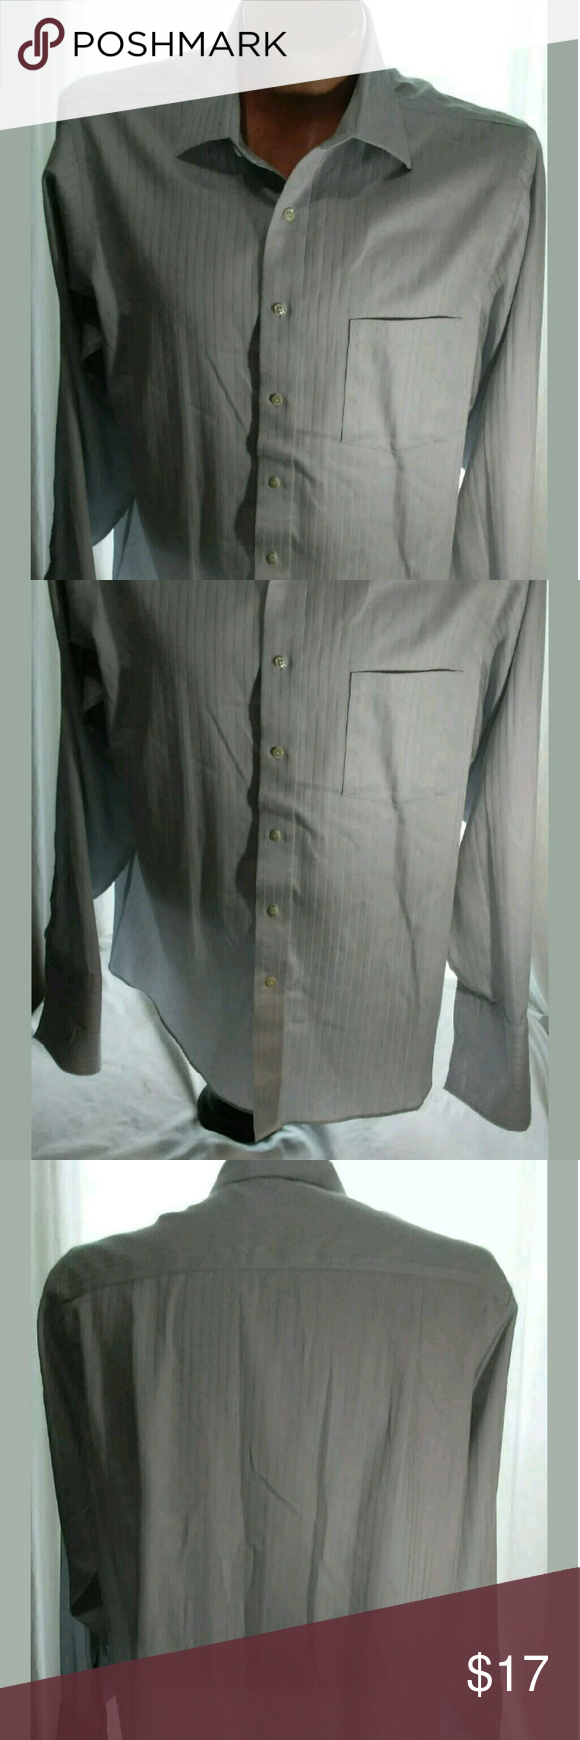 Donald Trump French Cuff Shirt 16 1/2 34/35 Good condition. No holes or stains. Donald J. Trump Shirts Dress Shirts